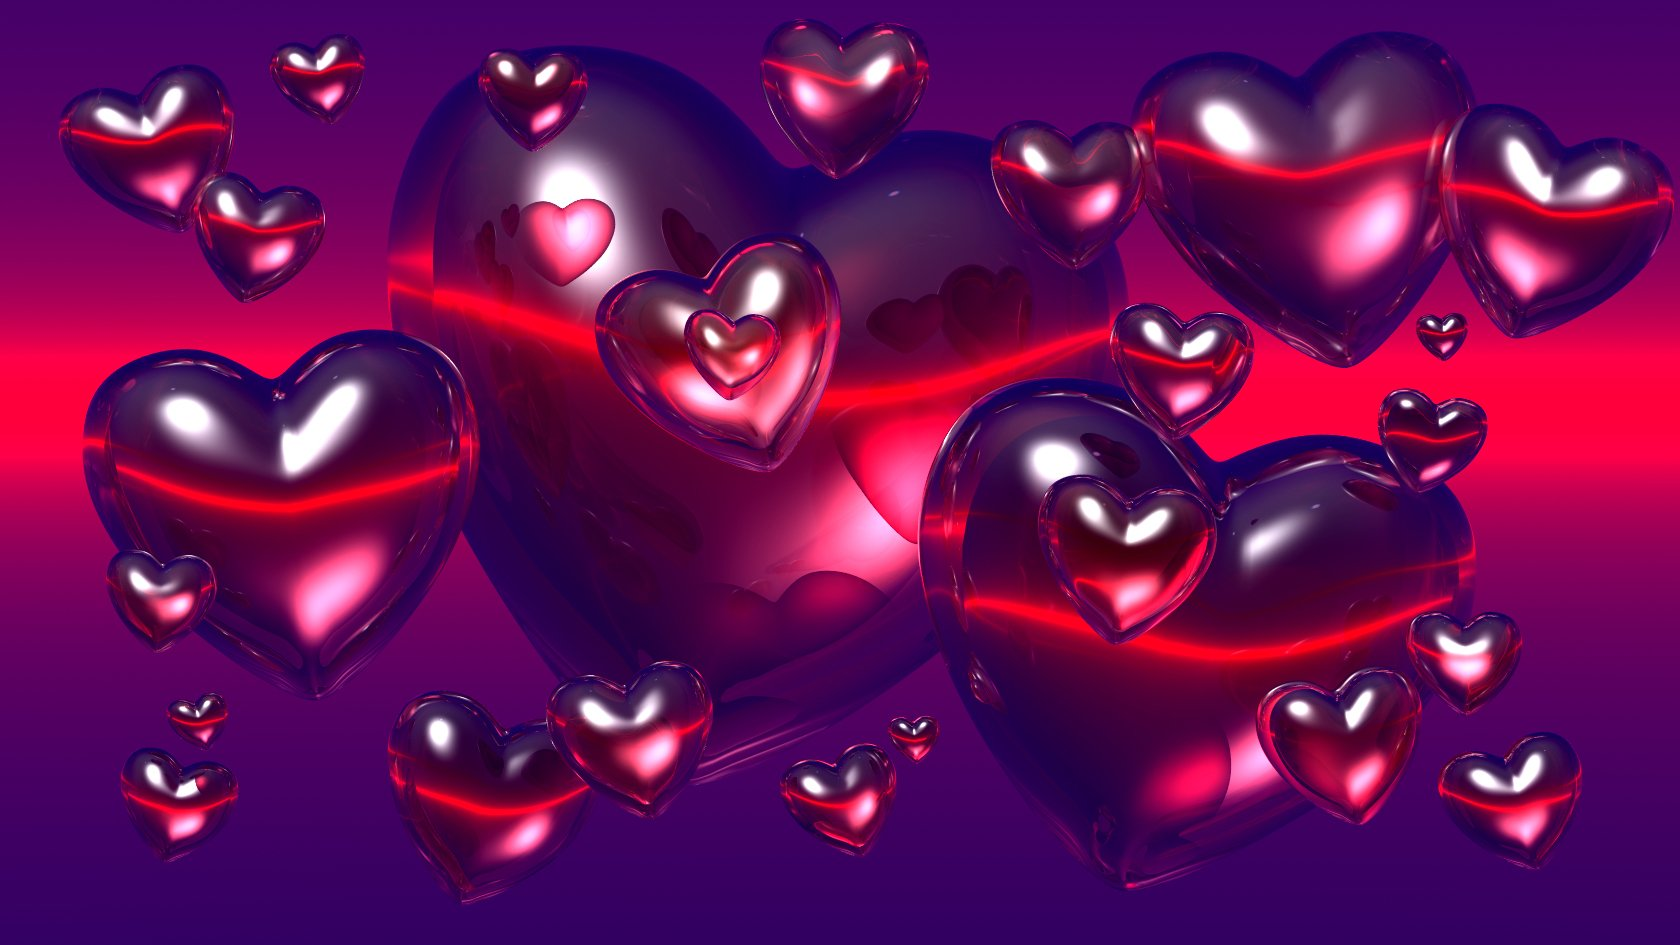 Love Heart Wallpaper Background 3d : 3D Heart Wallpaper - WallpaperSafari